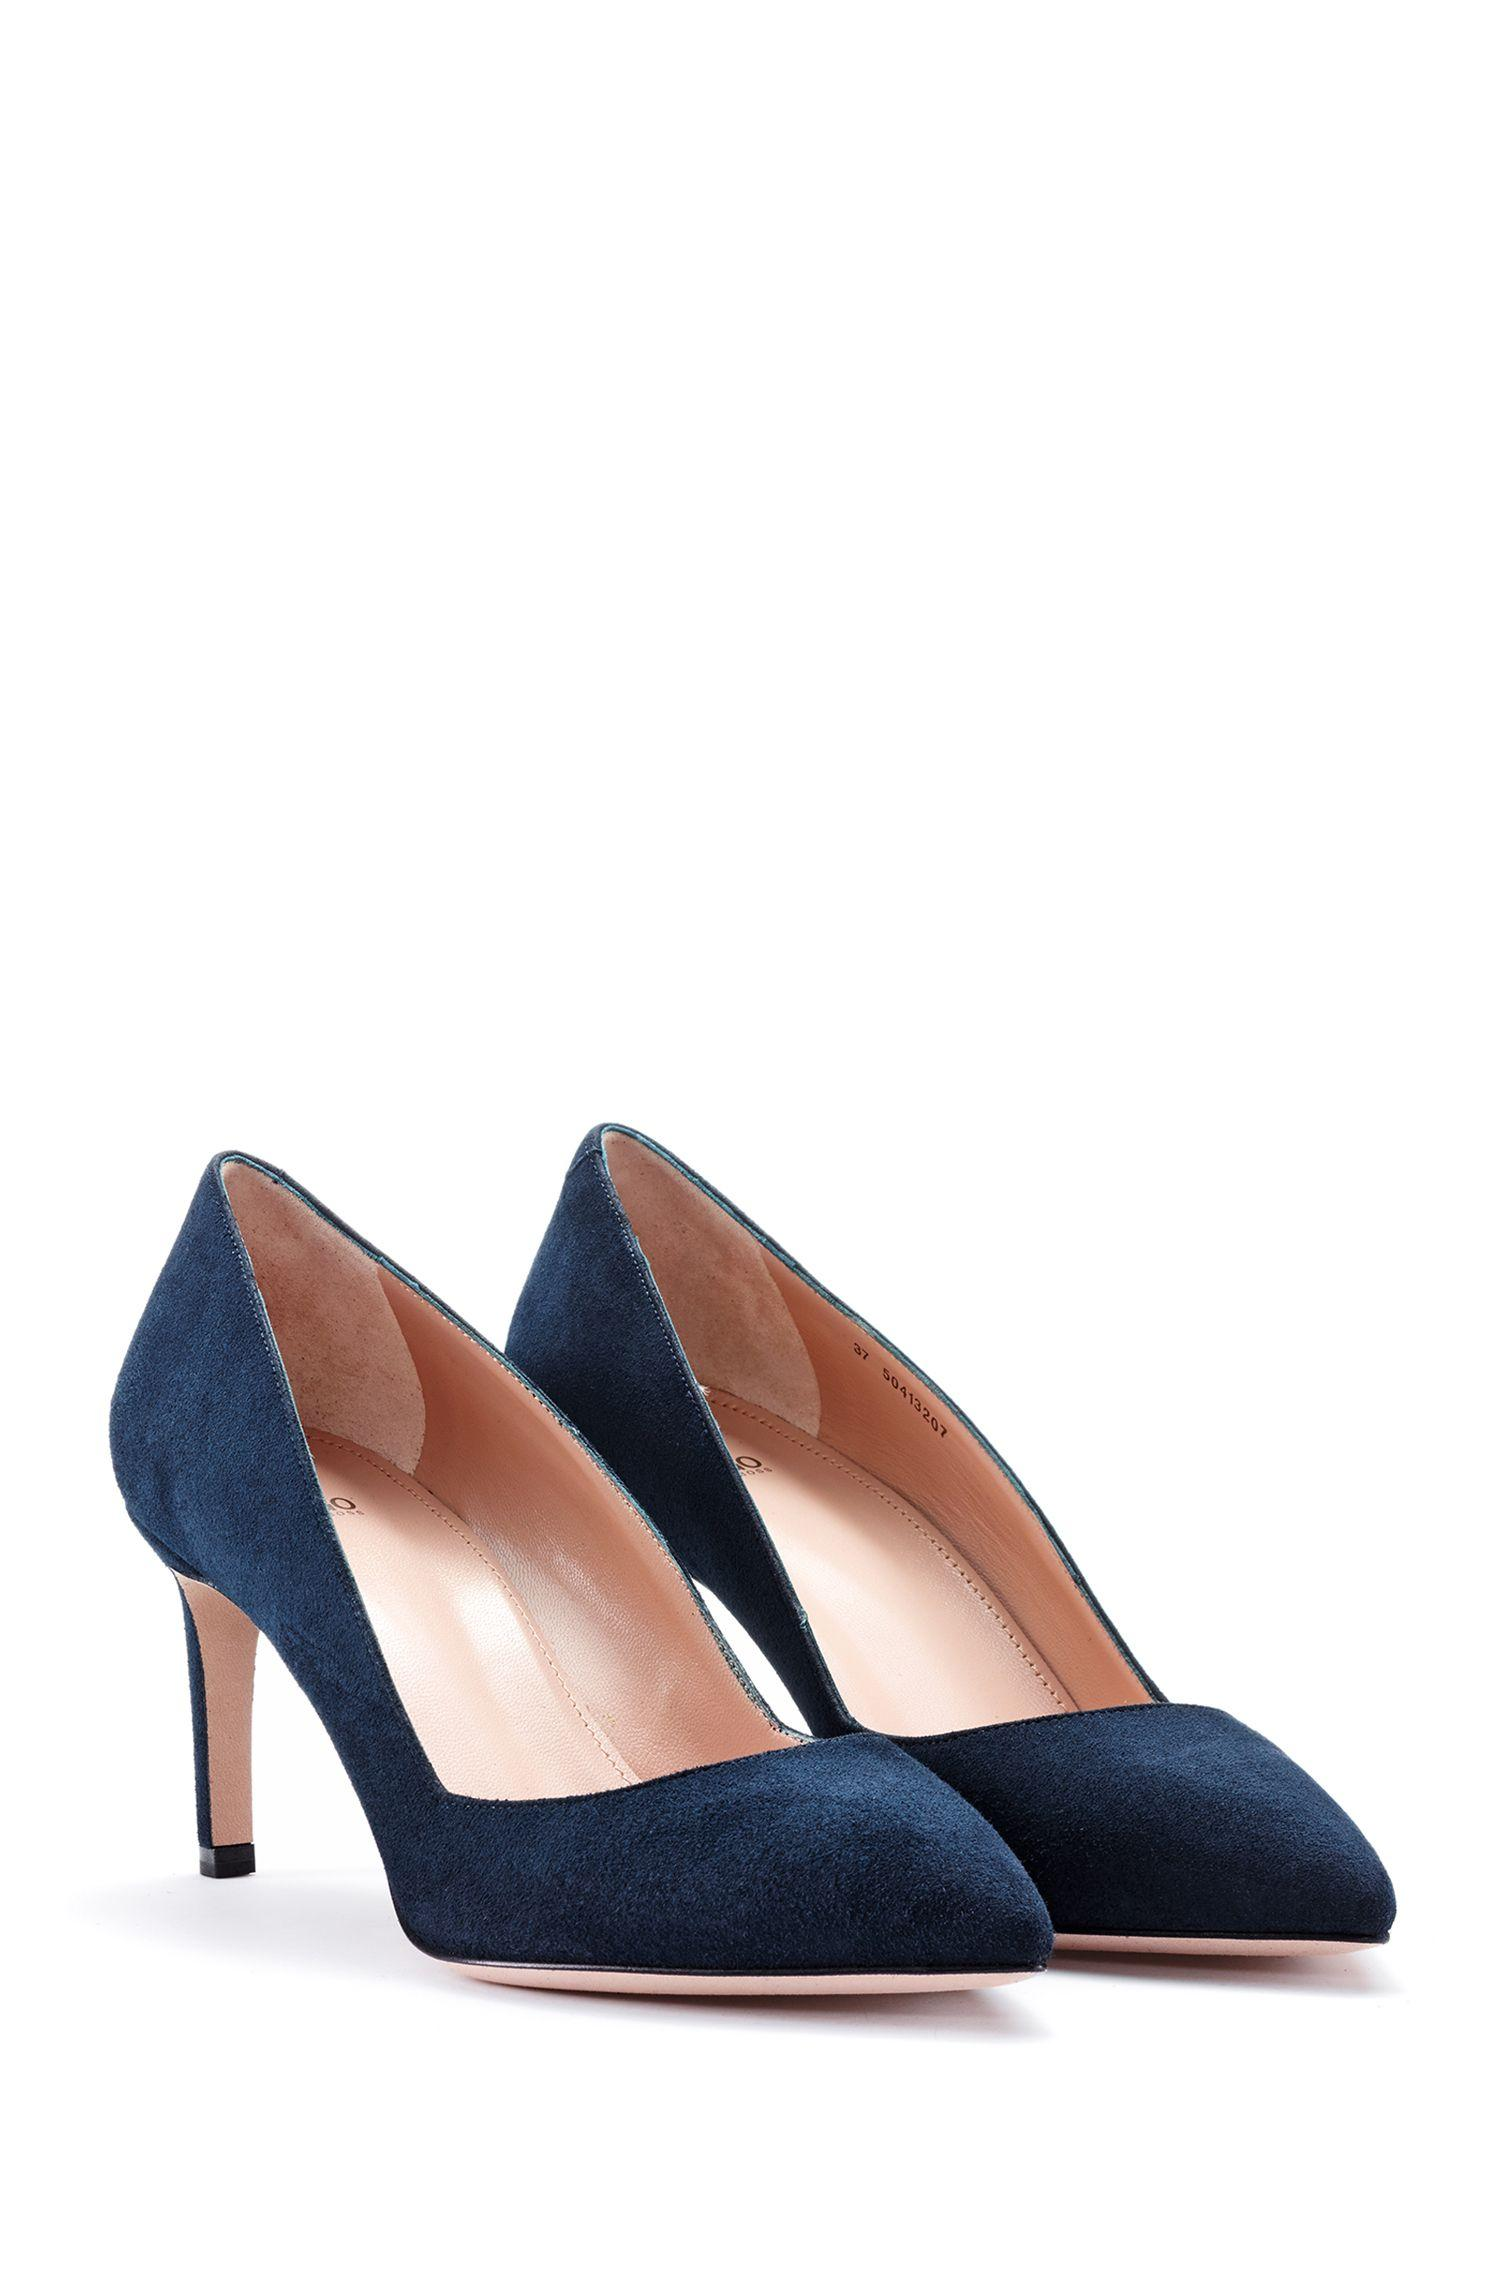 f6b514a00d5 HUGO Pointed-toe Pumps In Italian Suede in Blue - Lyst